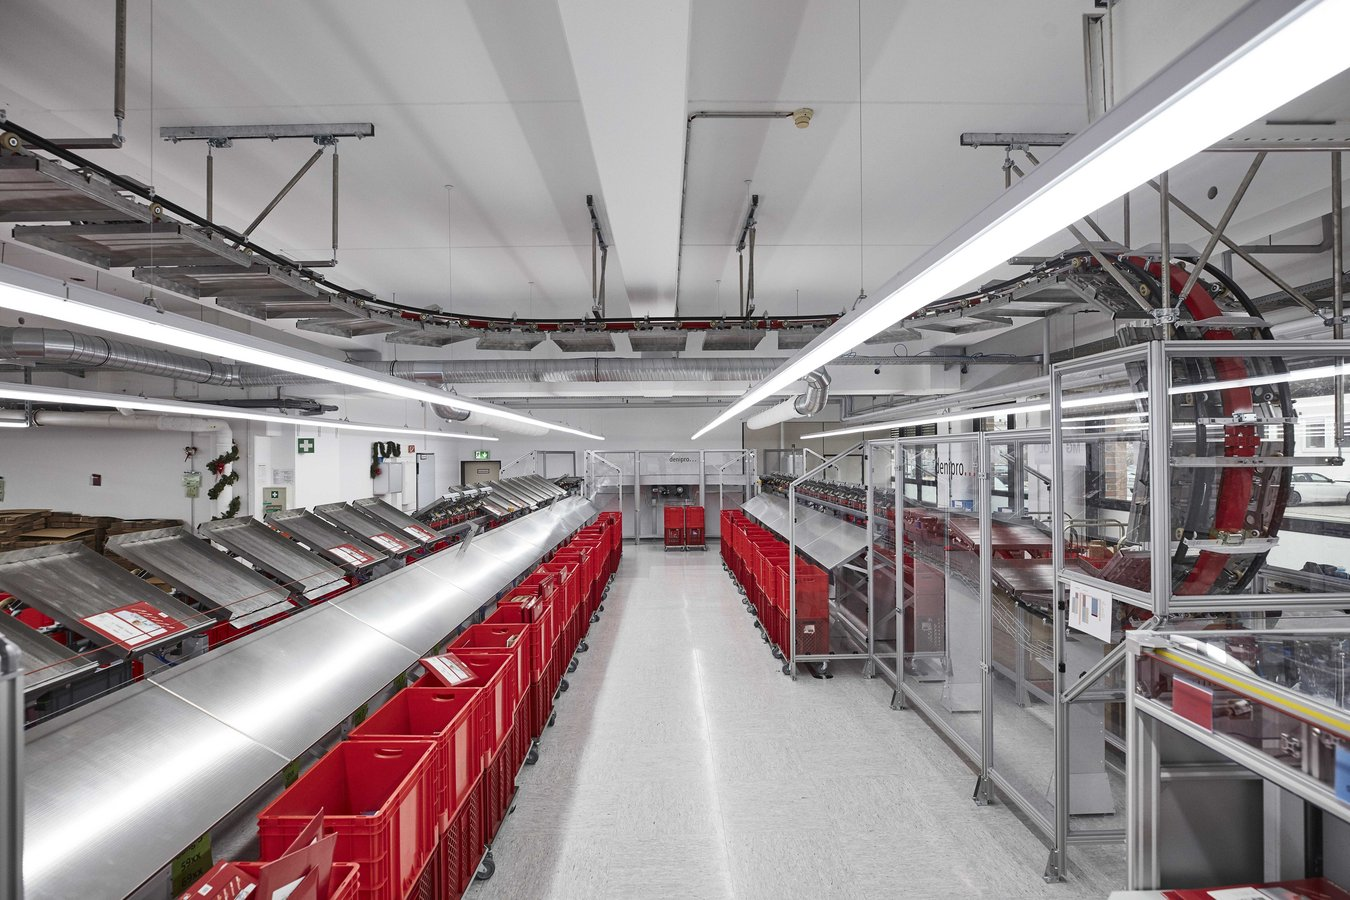 Swiss precision enables a highly-efficient sorting process